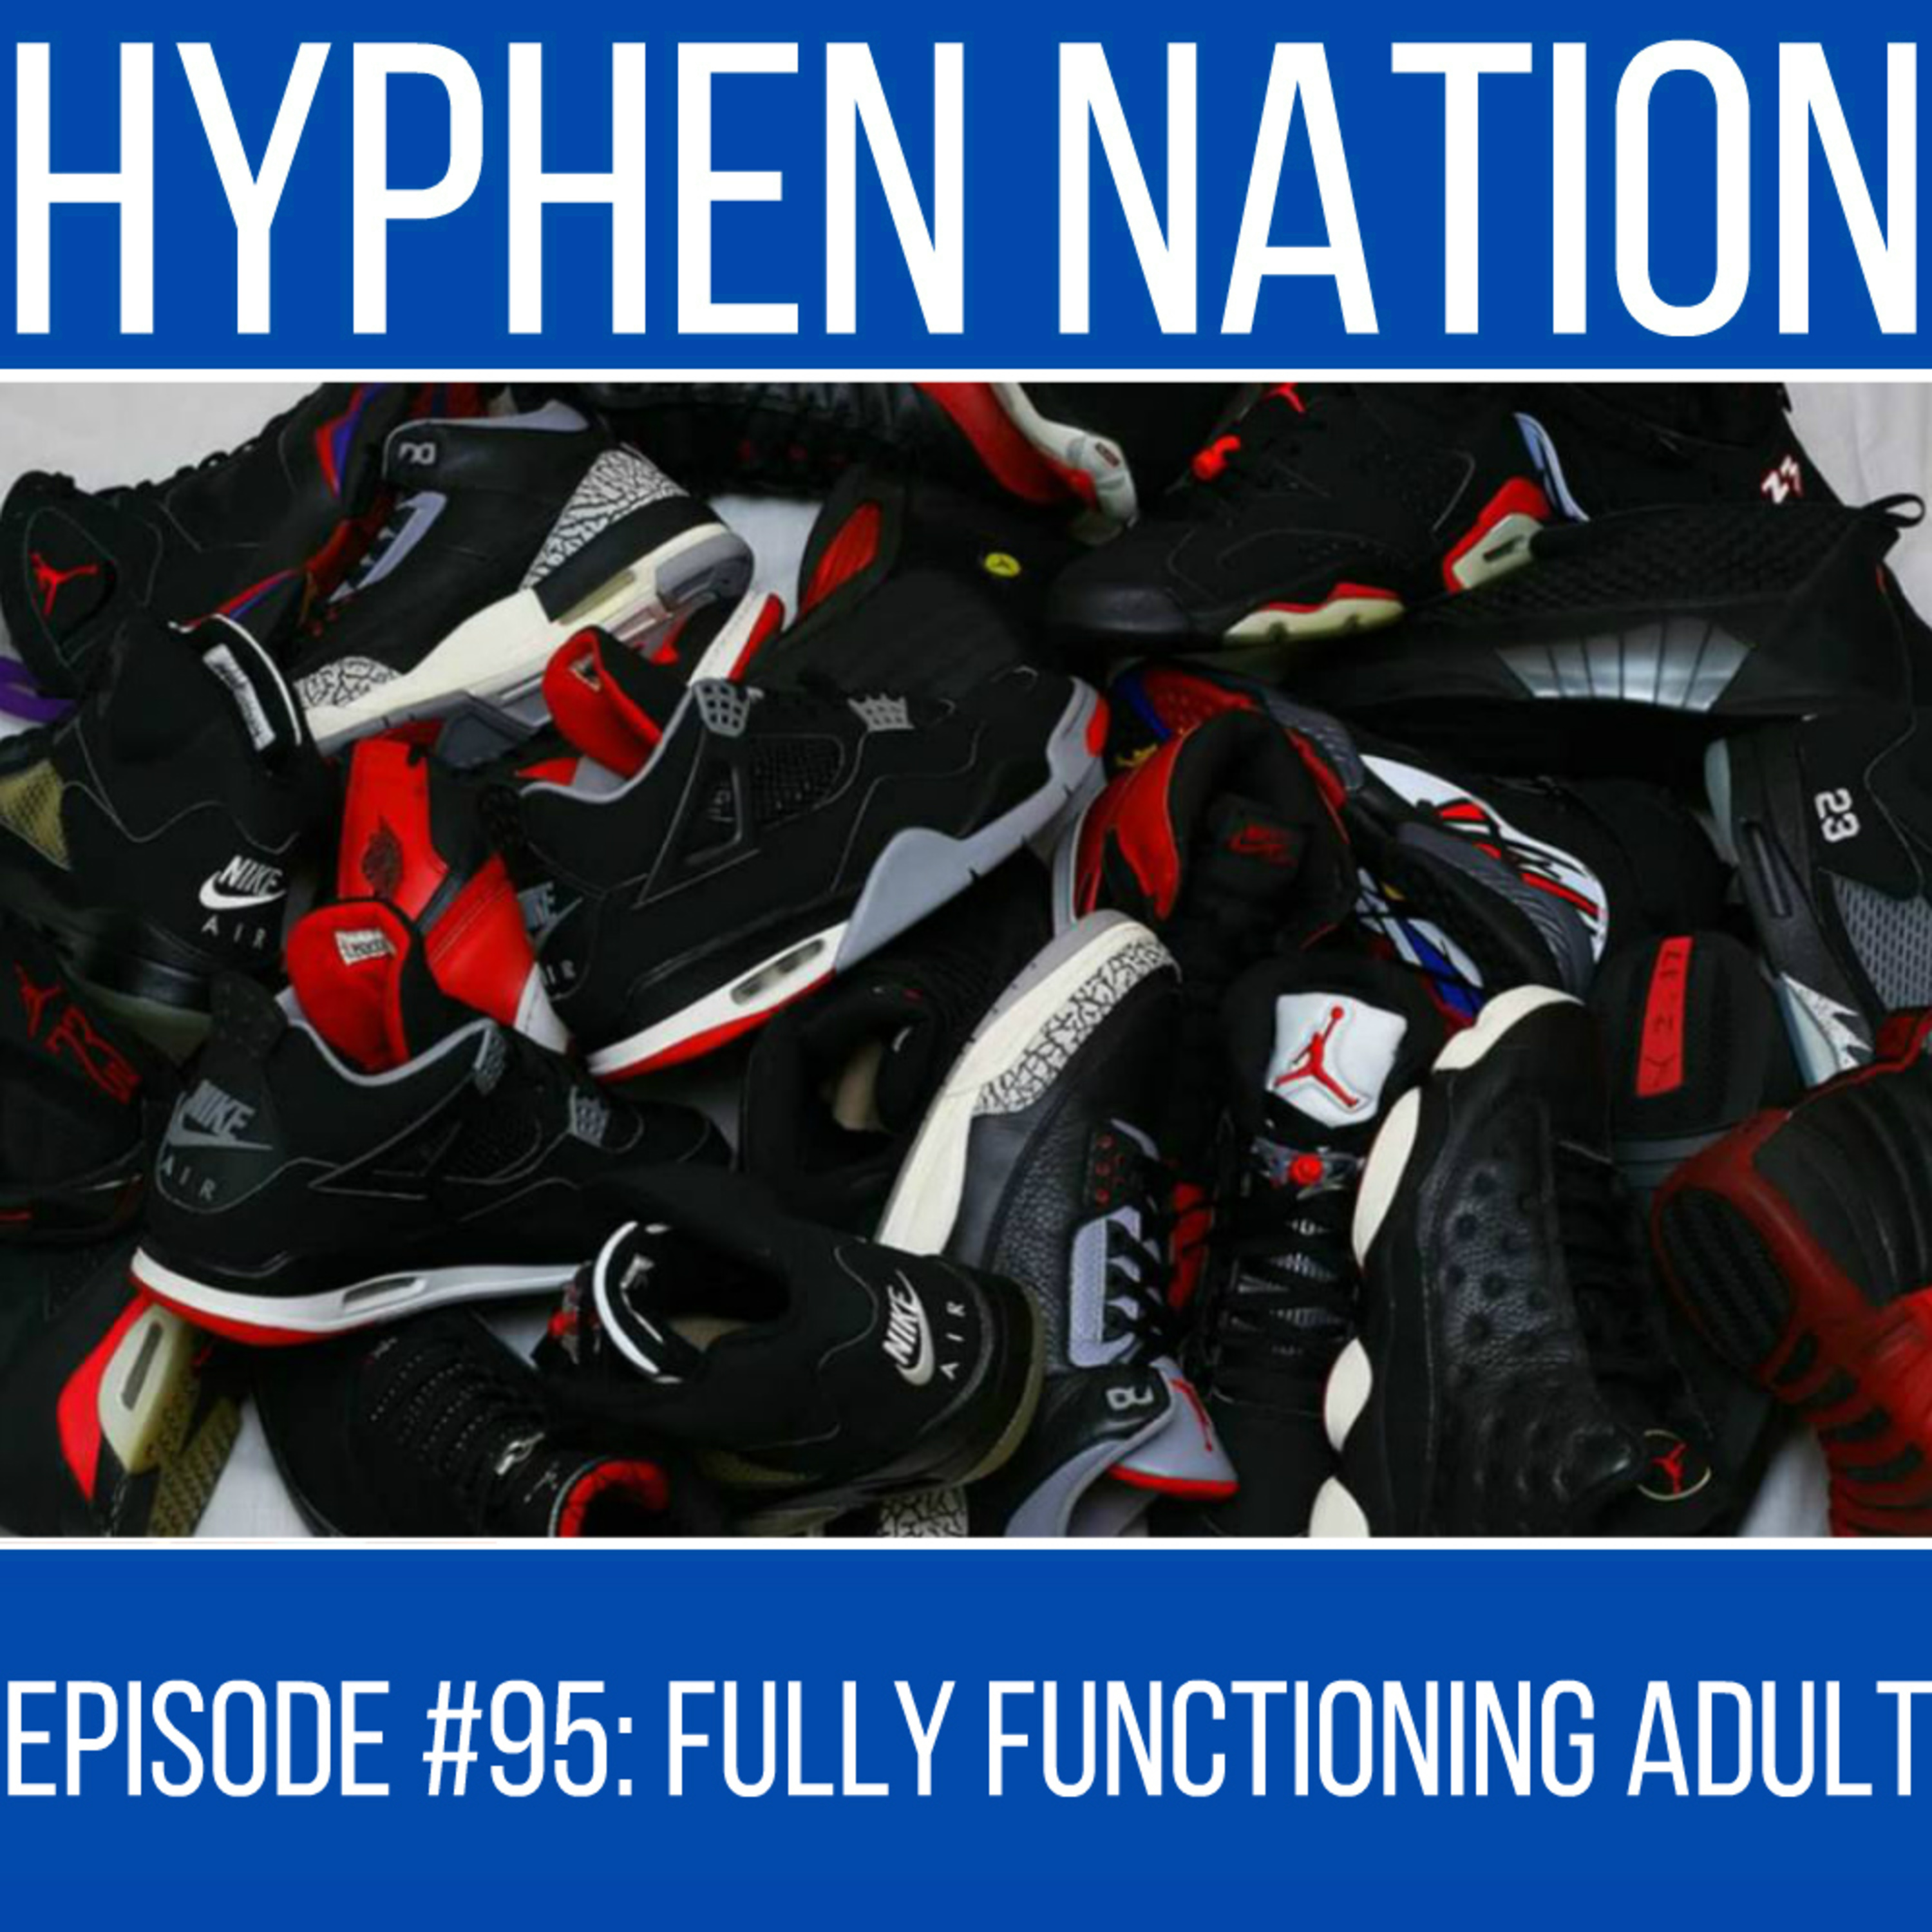 Episode #95: Fully Functioning Adult